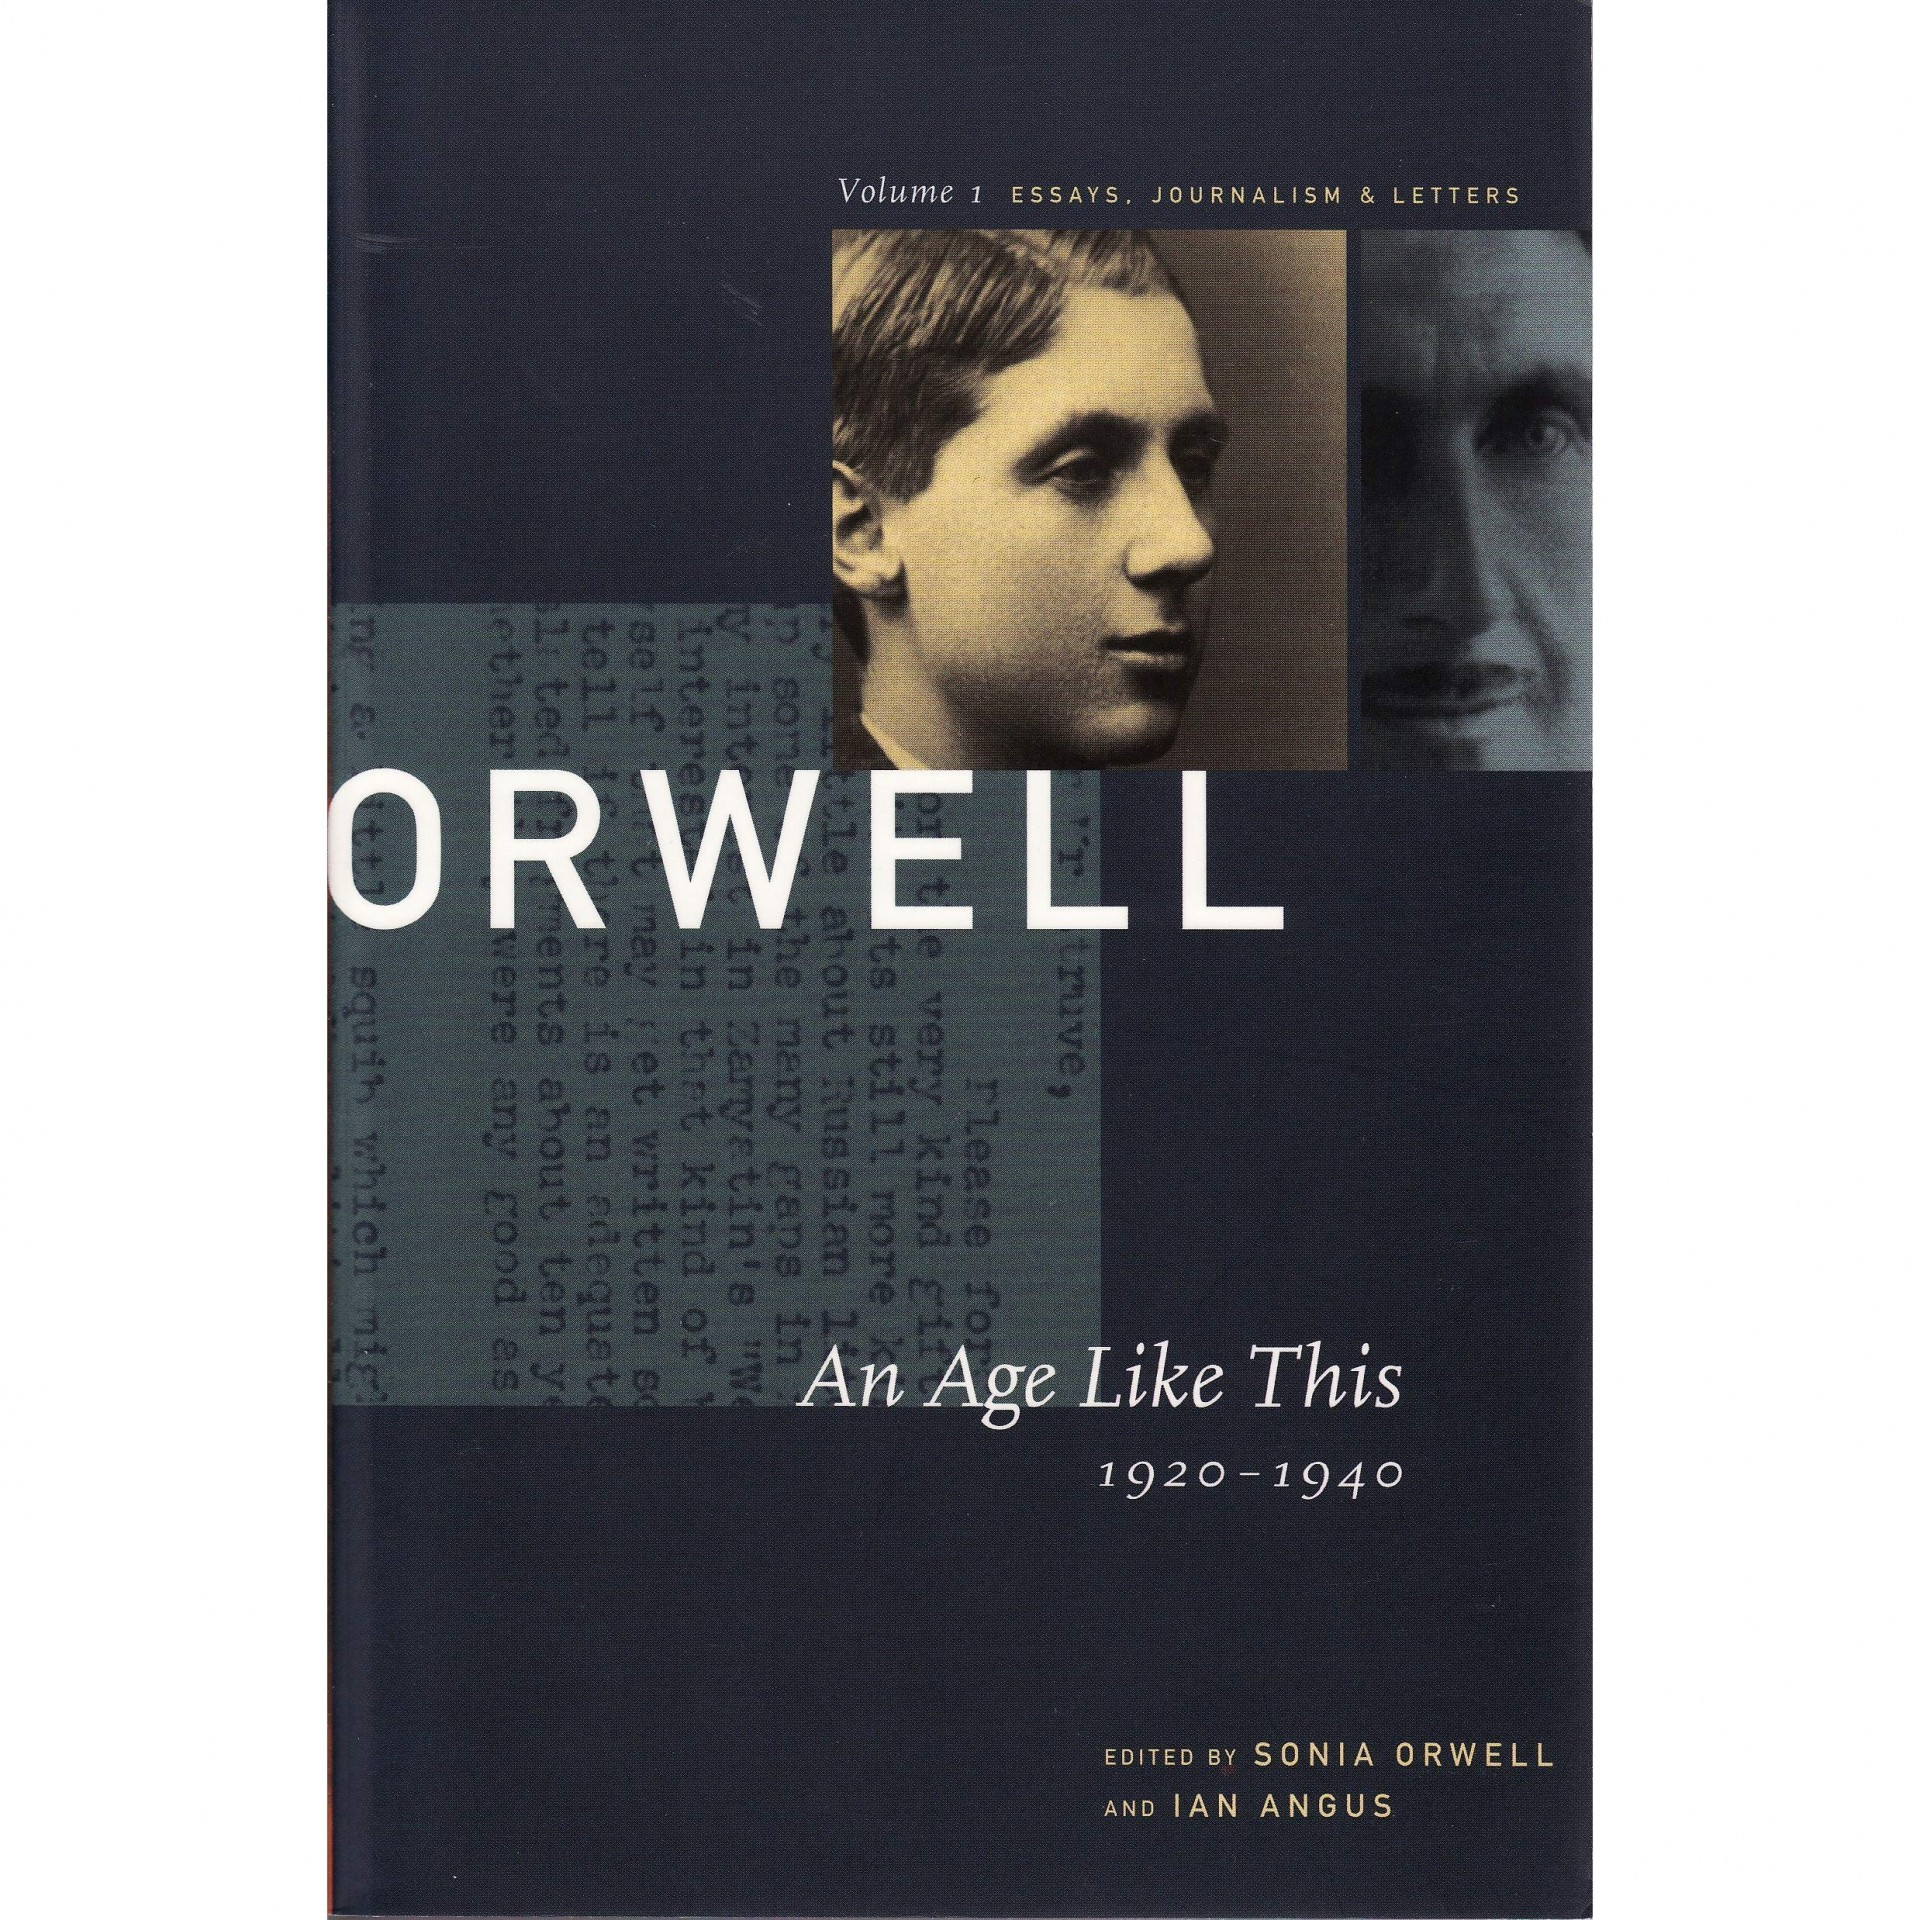 020 Orwell Essays Essay Example  Uy2476 Ss2476 Singular Amazon Pdf Epub1920